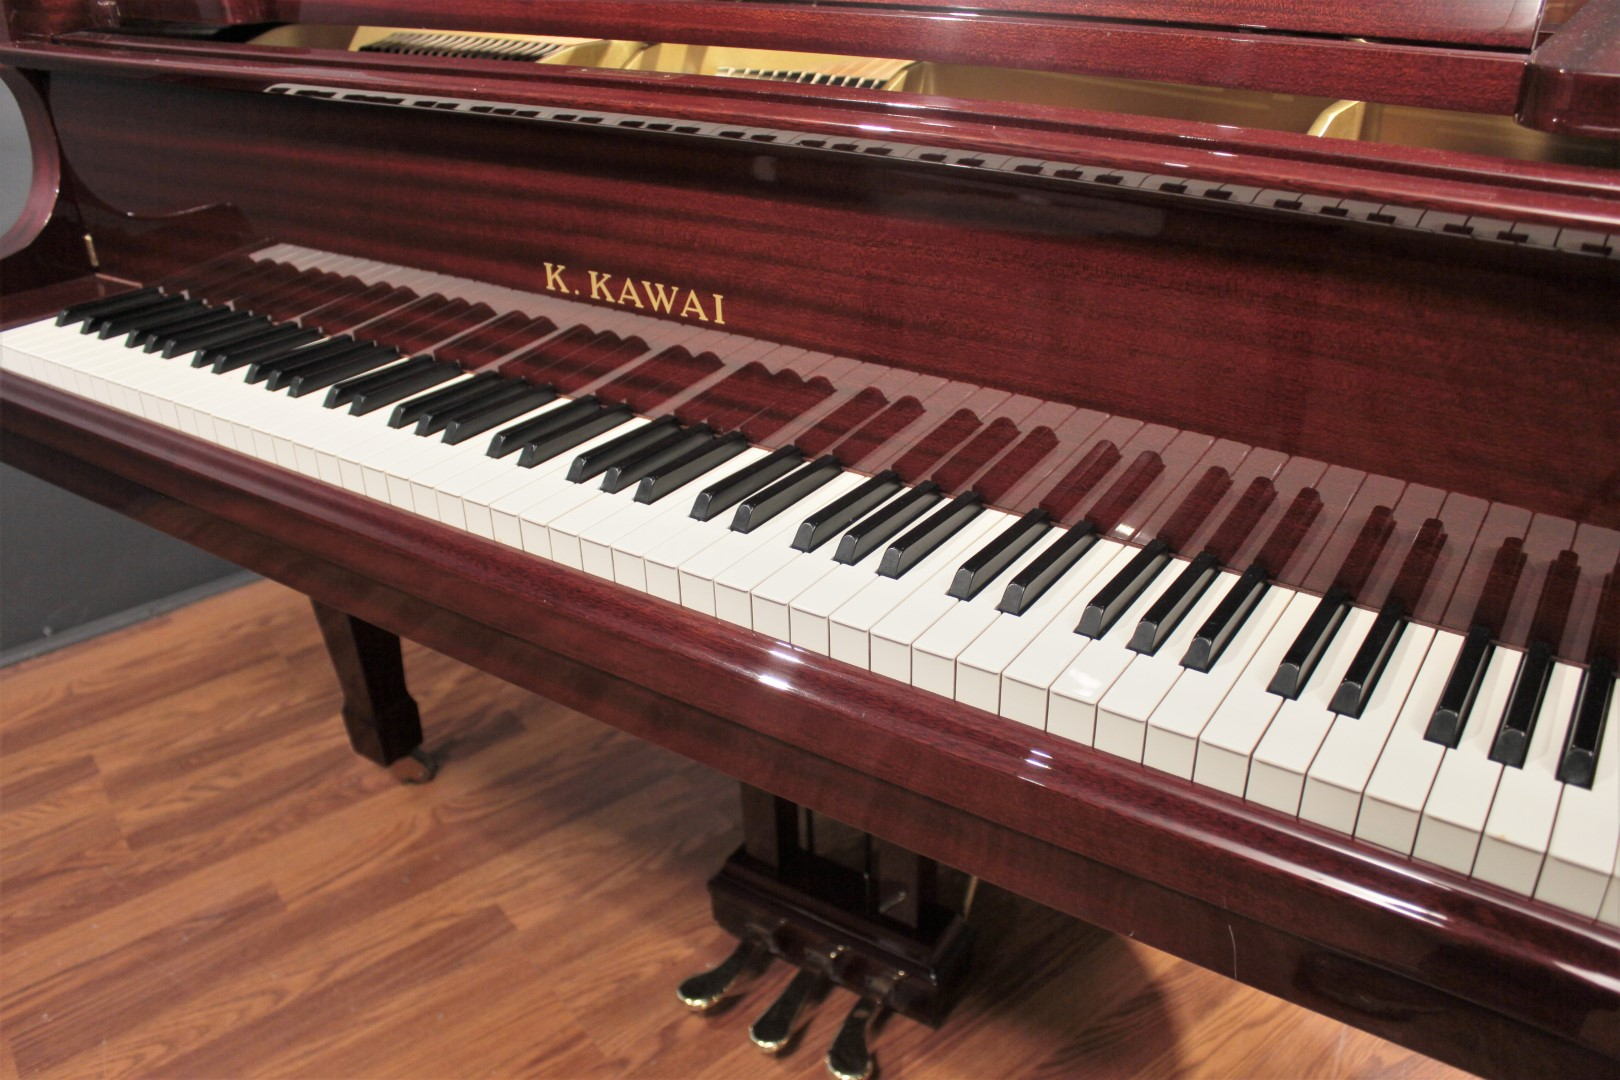 Kawai RX-1 5'5'' Player Grand Piano Ribbon Mahogany PianoDisc Prodigy